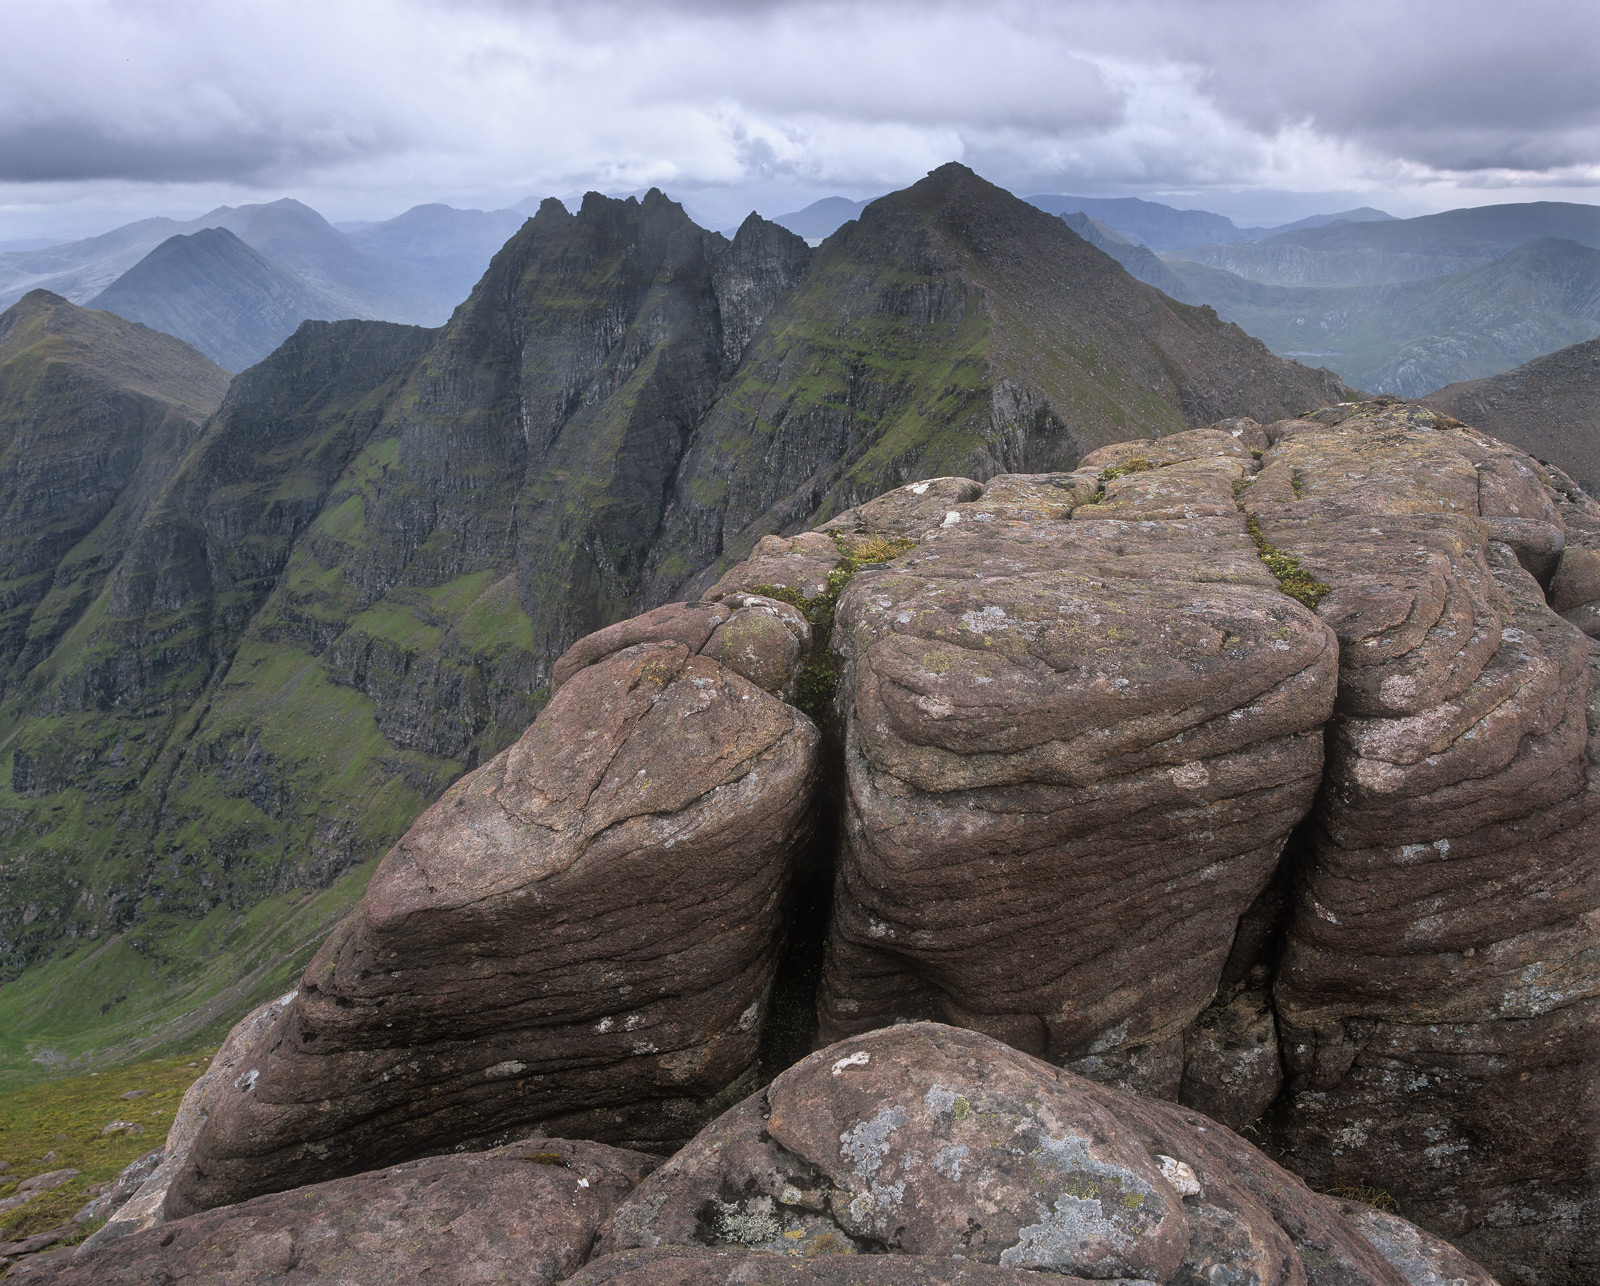 An Teallach is a ridge walk on a par with the hobbits trek to Mordor. I climbed this on a blustery Aprilmorning.&...